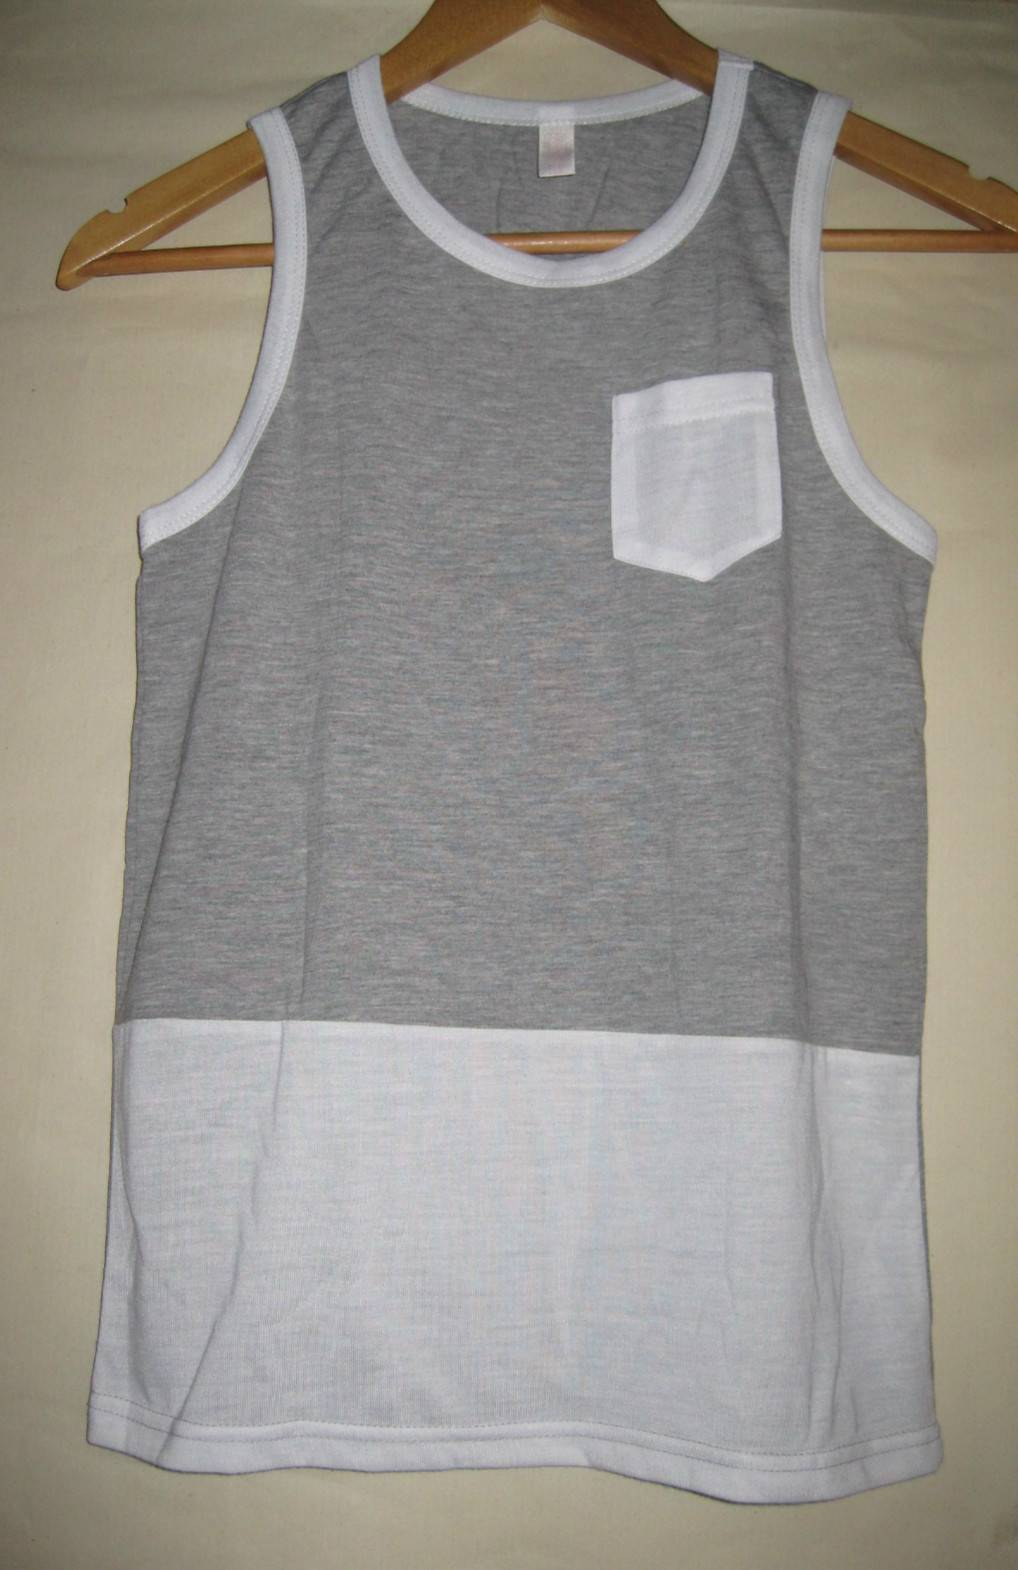 Children's vest with pocket and combination